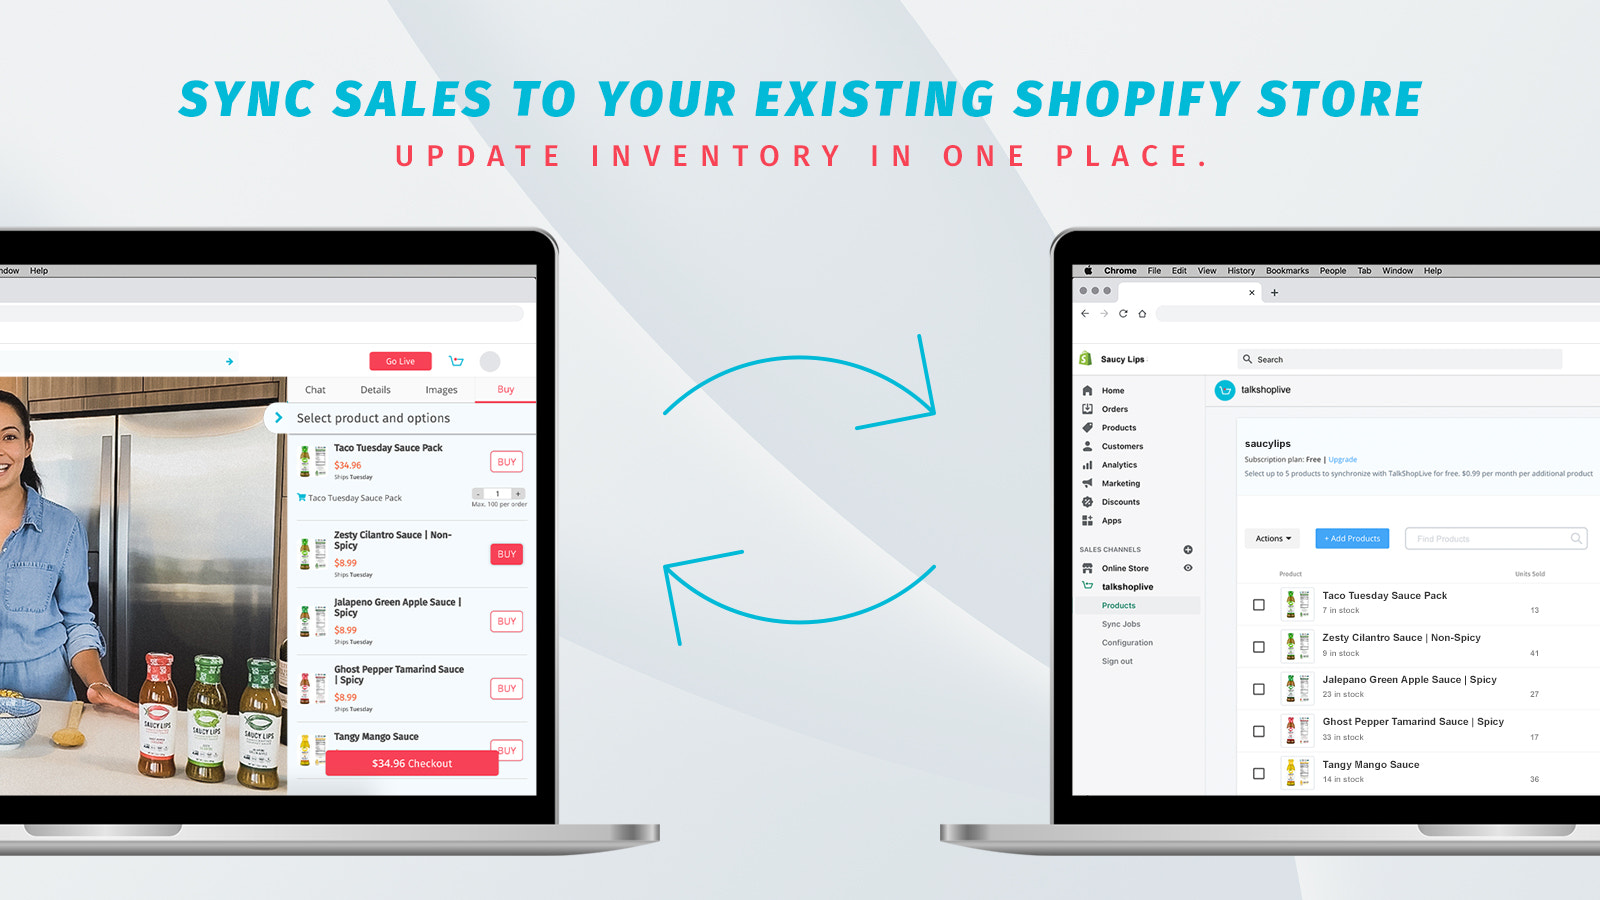 Sync sales to your existing Shopify store